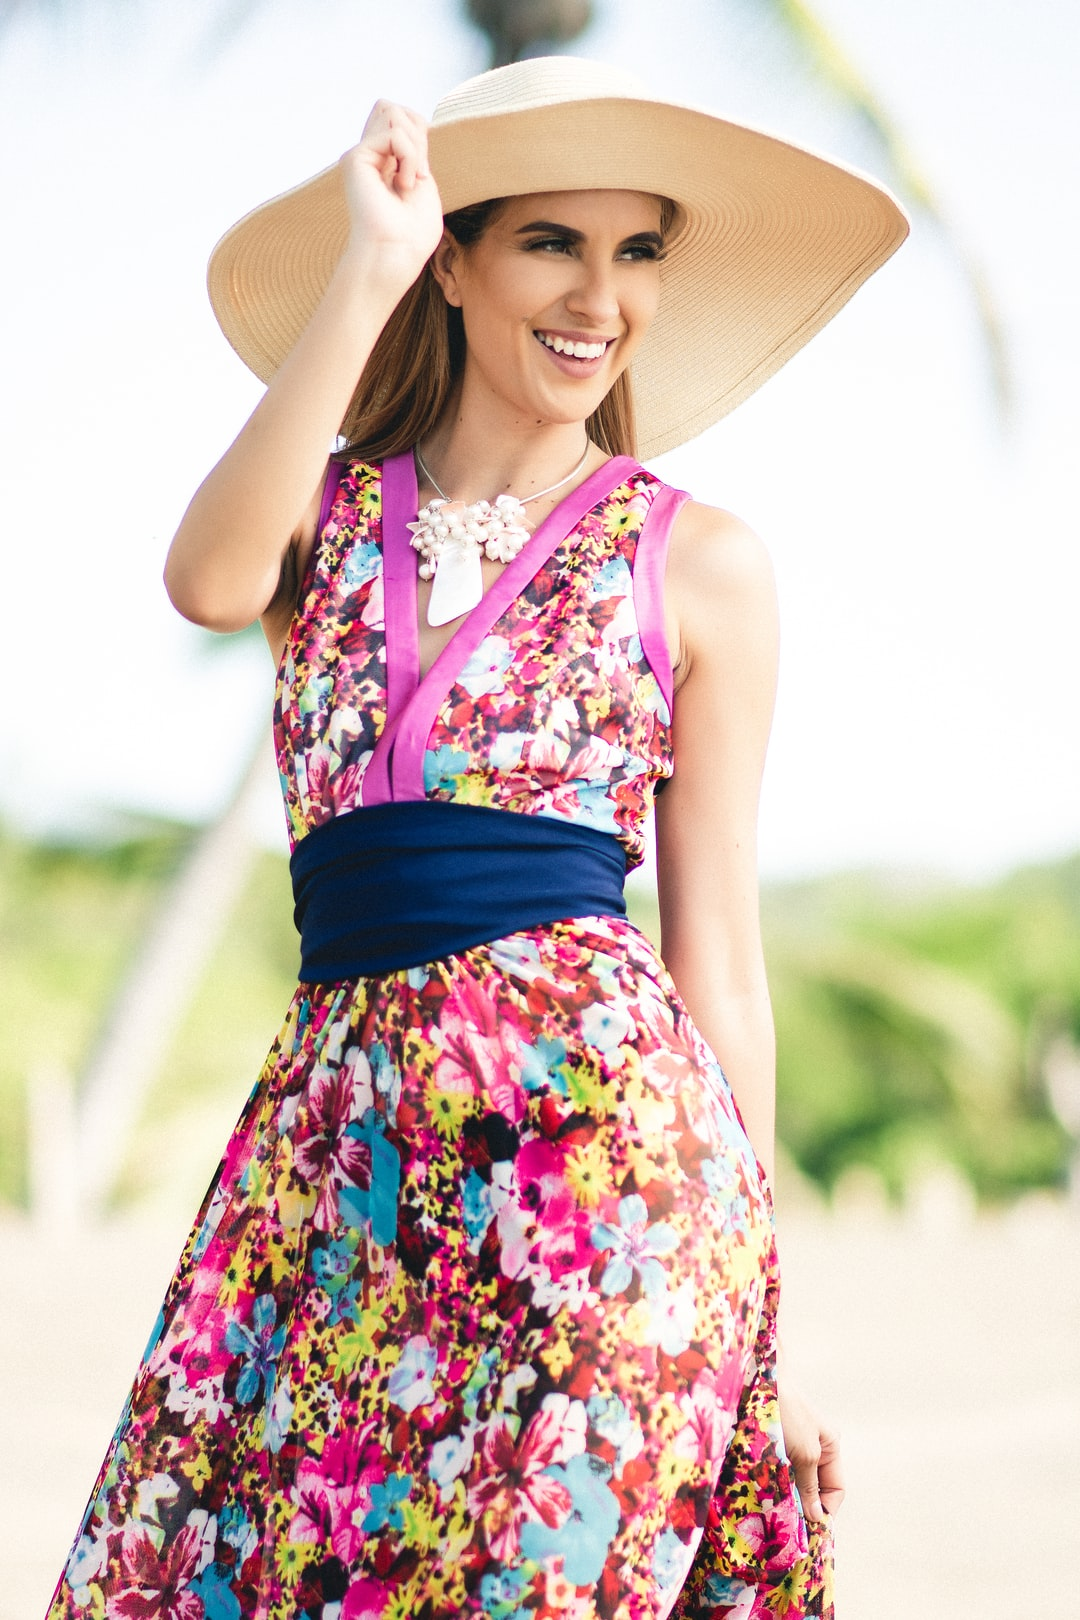 Spring Season Floral Dress Modeling with Fashionable Style